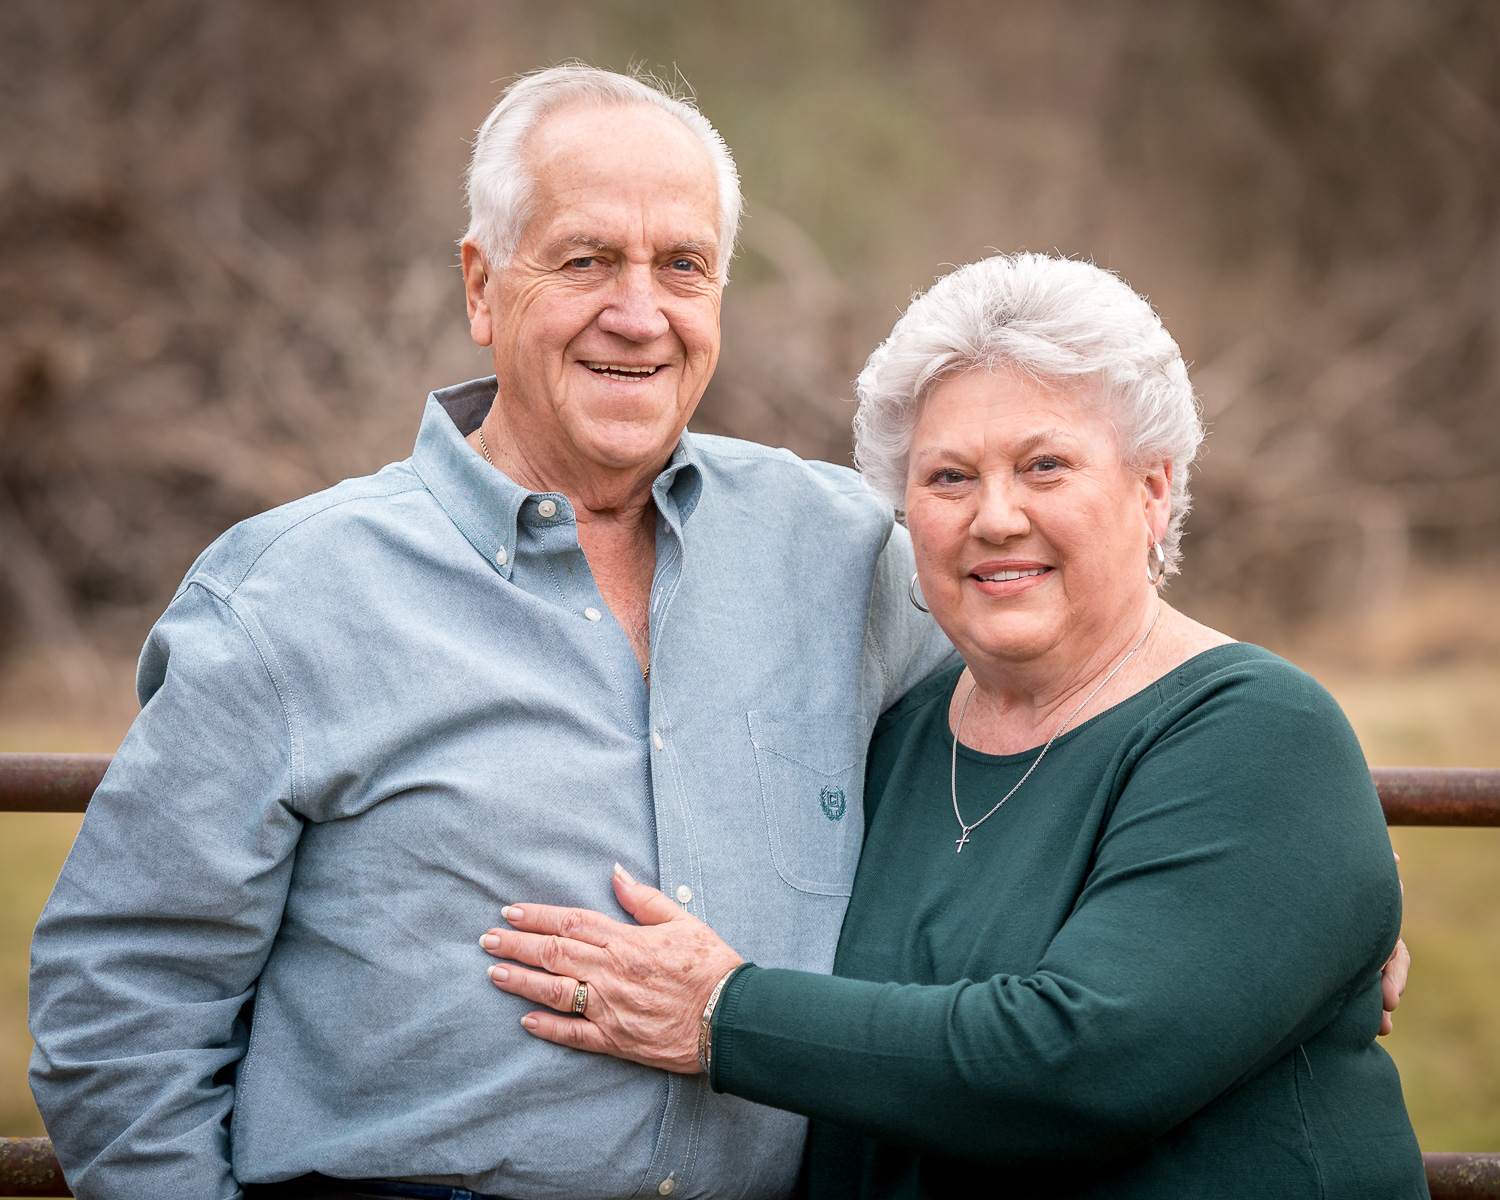 couple portrait - 5 Crucial Mistakes You Need to Avoid When Photographing Clients